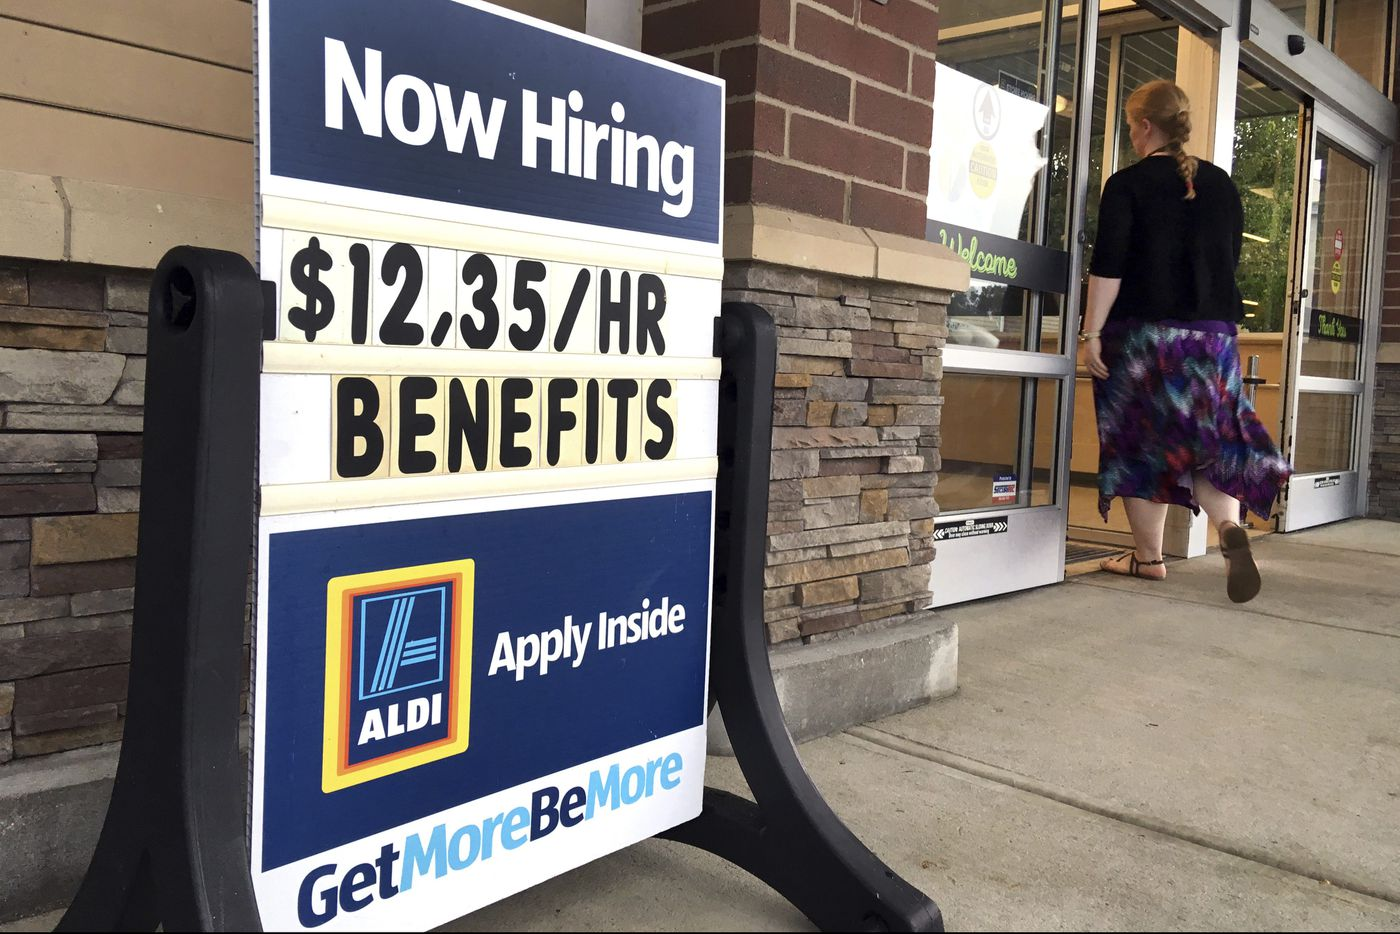 America has a record 7.1 million job openings, making it a good time to ask for a raise